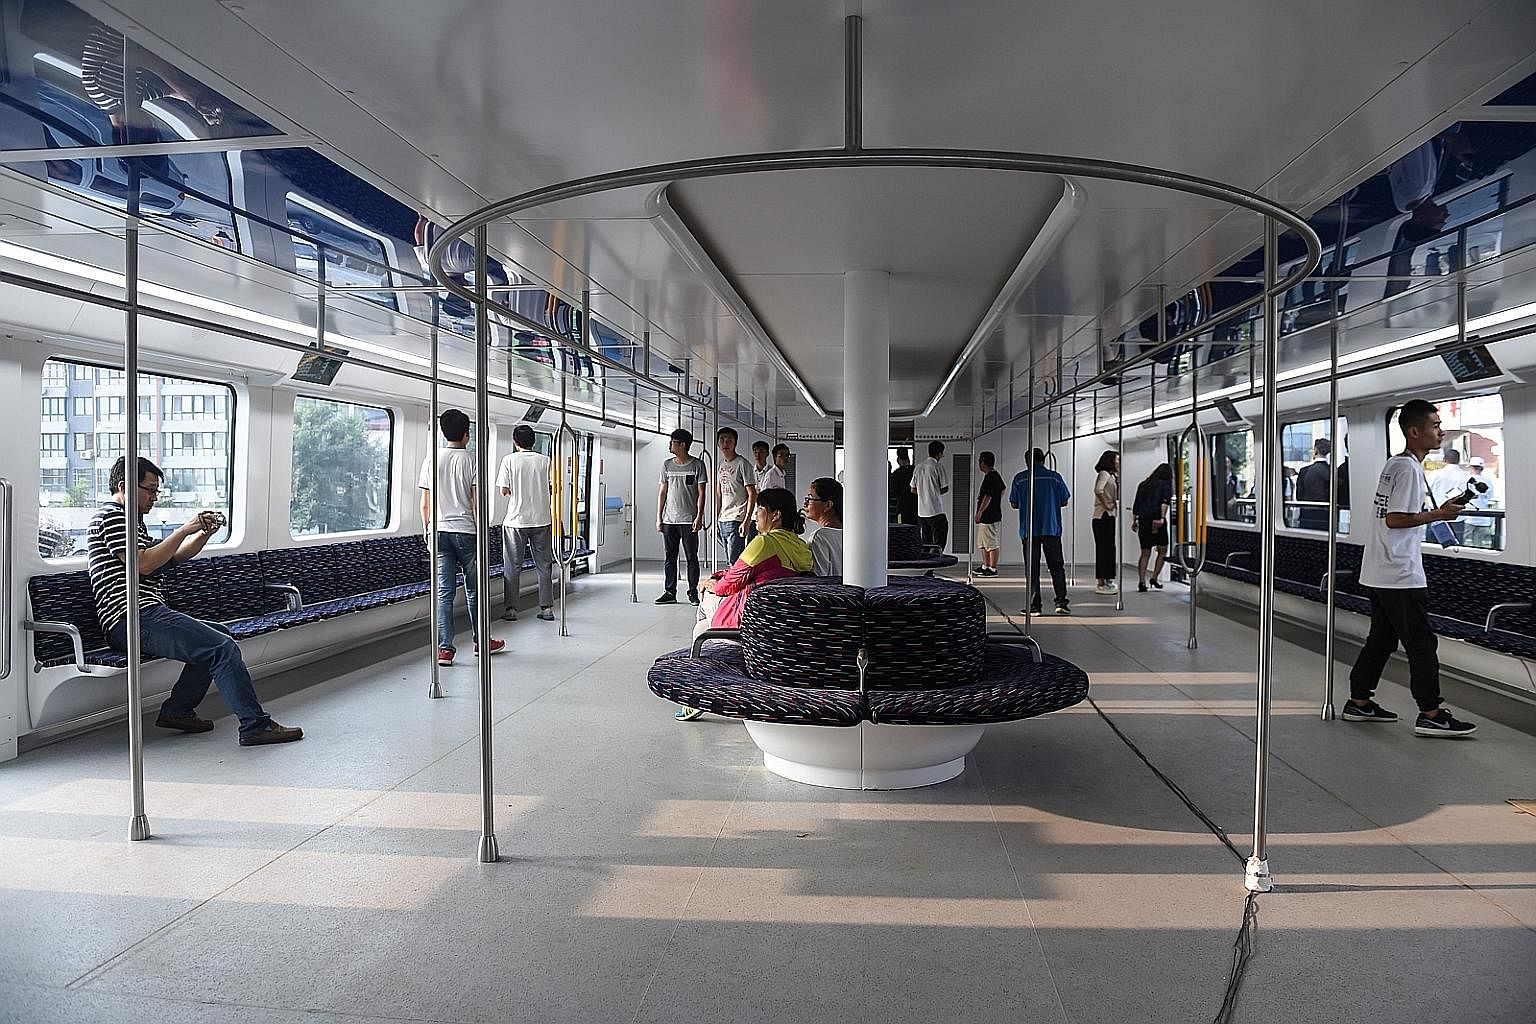 The interior of the TEB-1. Each 22m-long vehicle can carry up to 300 passengers. Up to